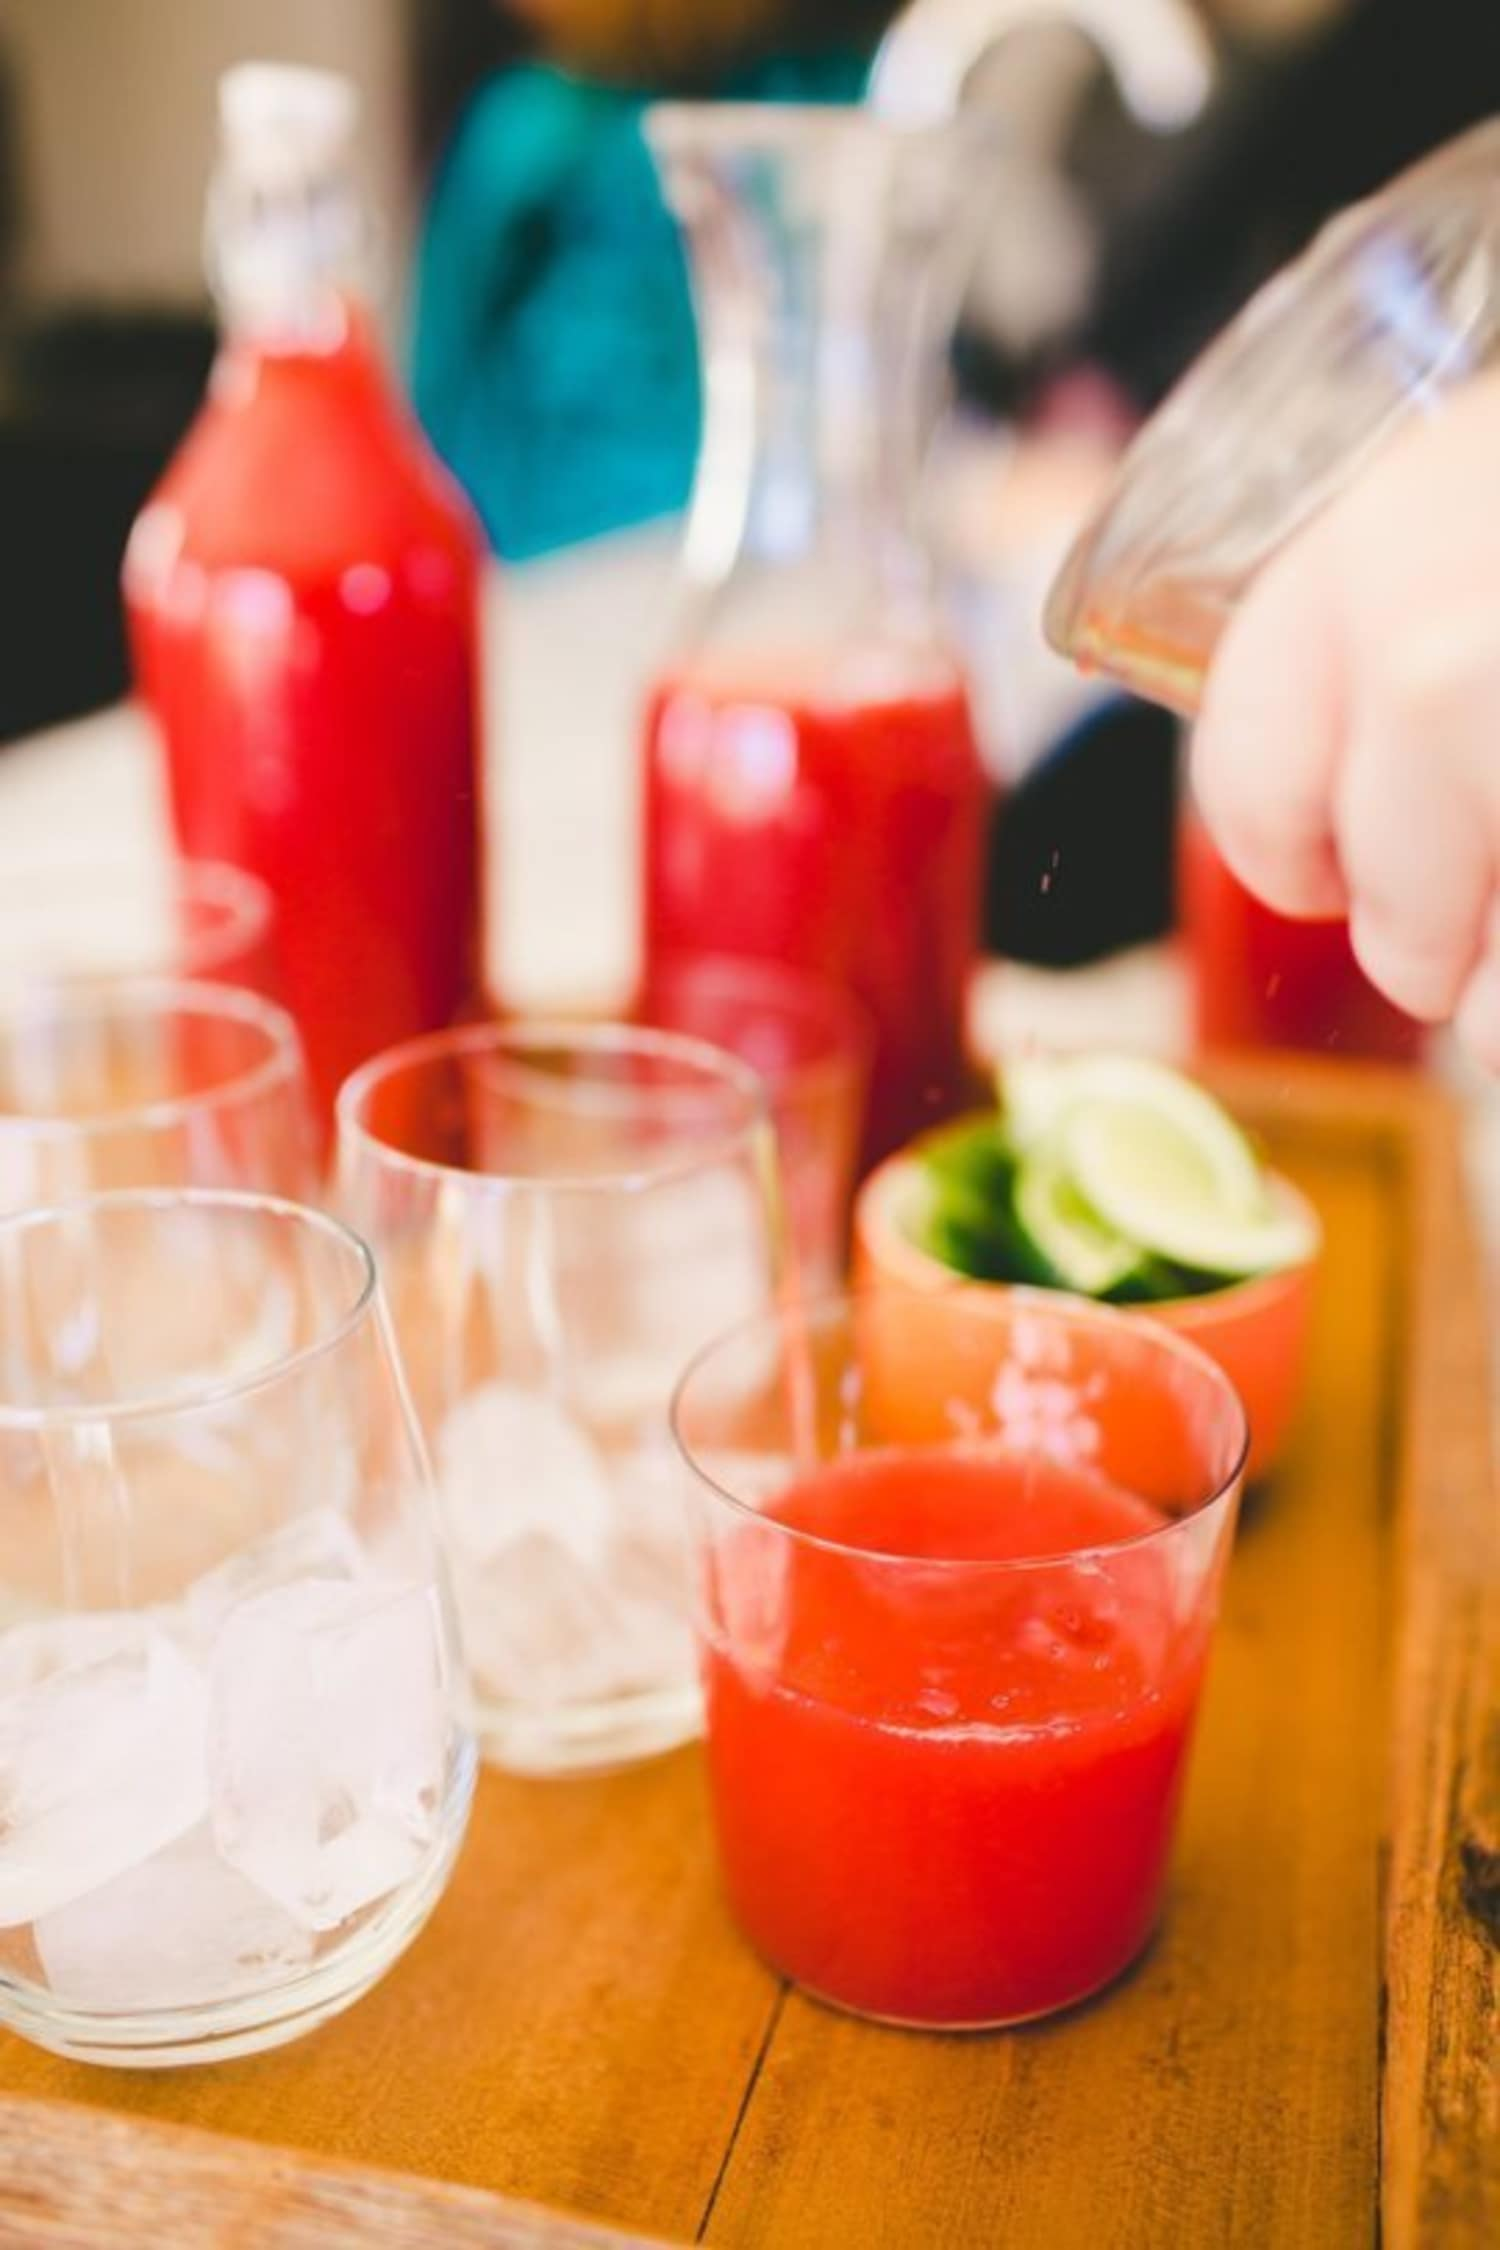 5 Expert Tips for Mixing More Impressive Non-Alcoholic Cocktails